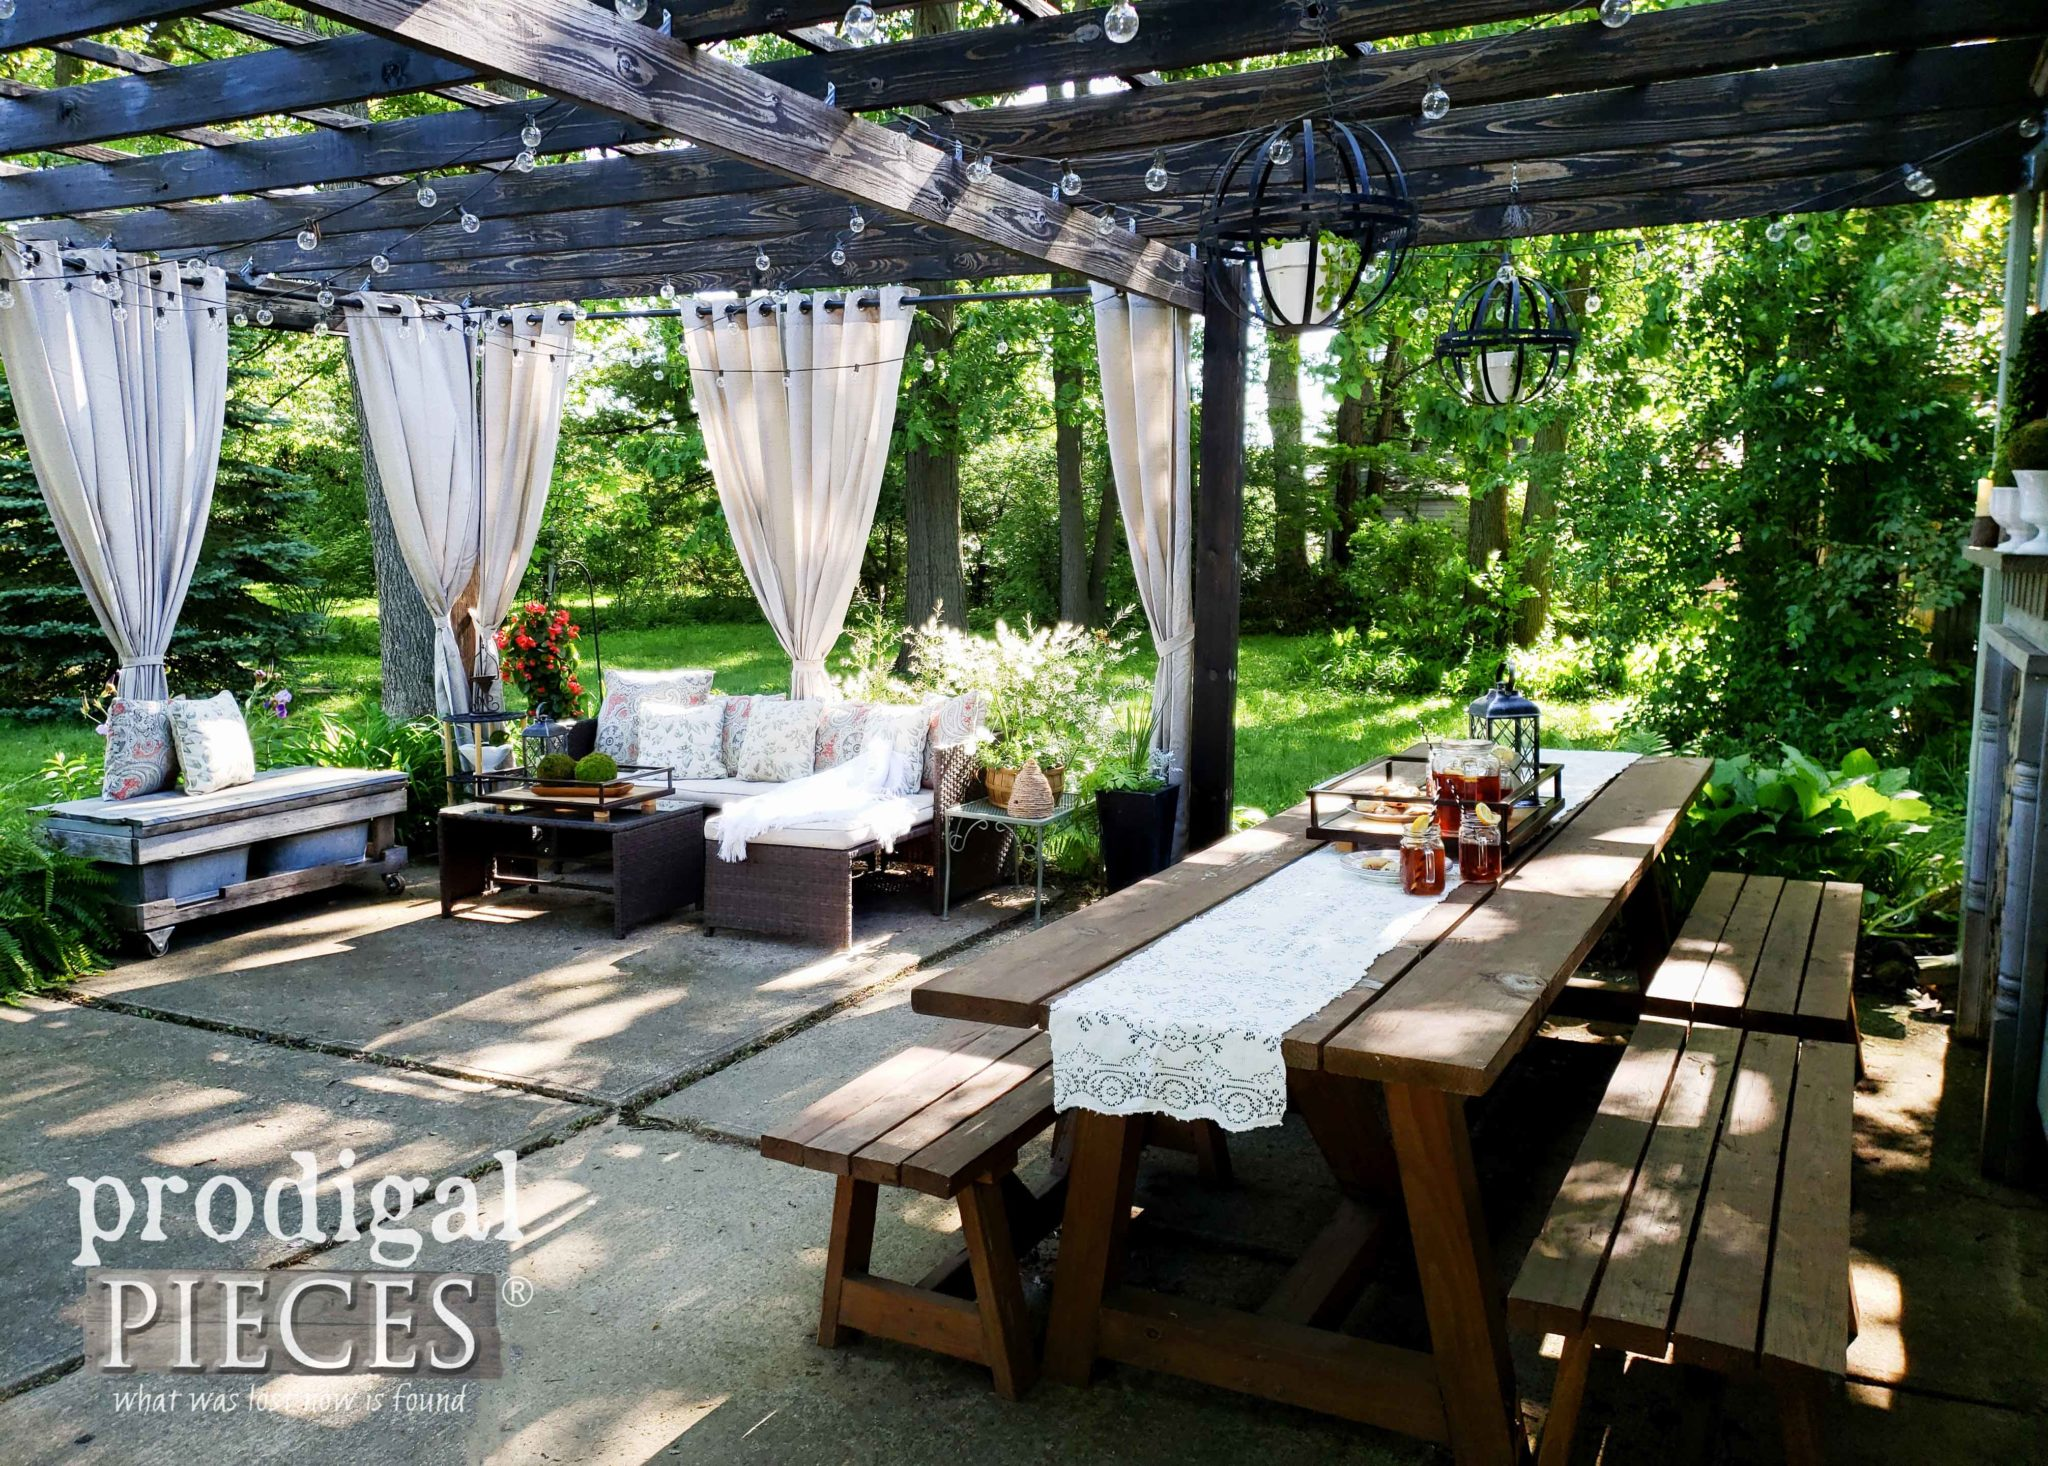 DIY Patio with Pergola and Large Outdoor Dining Table with Benches by Larissa of Prodigal Pieces | prodigalpieces.com #prodigalpieces #diy #home #outdoor #patio #homedecor #farmhouse